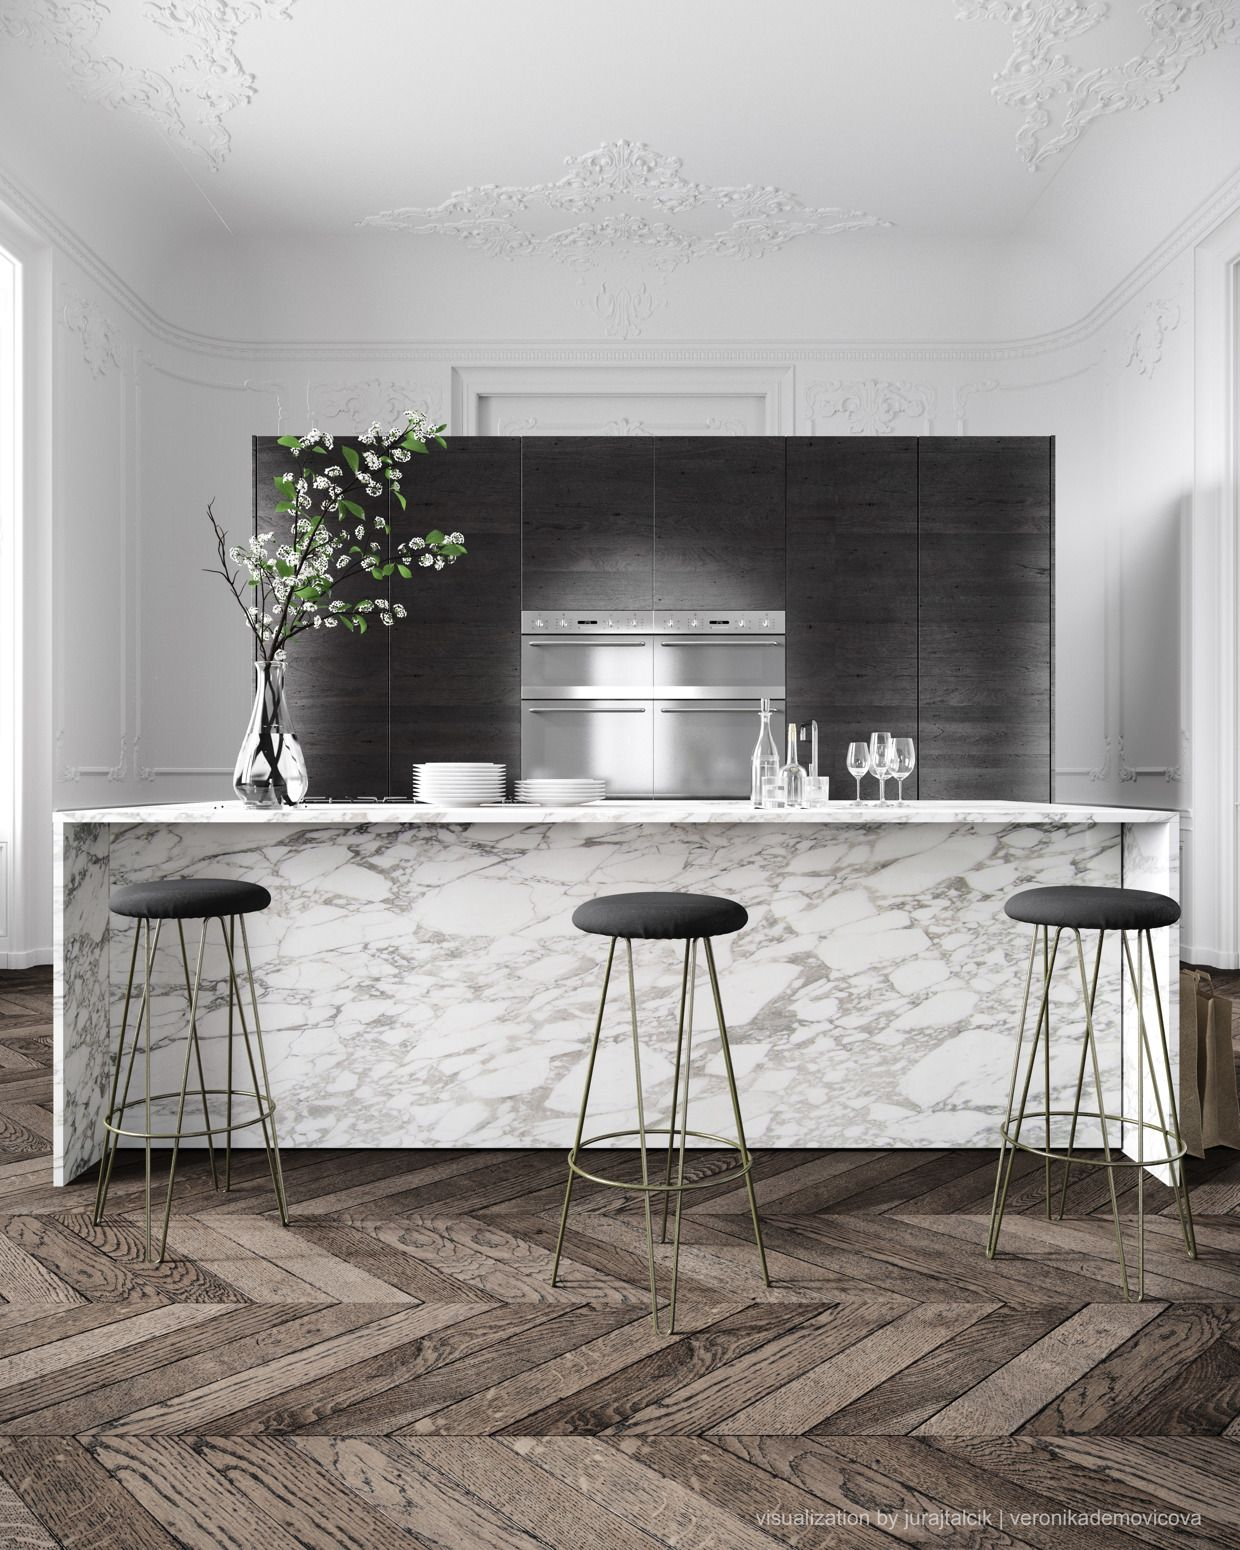 Marble Keuken Parisian Apartment By Jessica Vedel Design Style If Only I